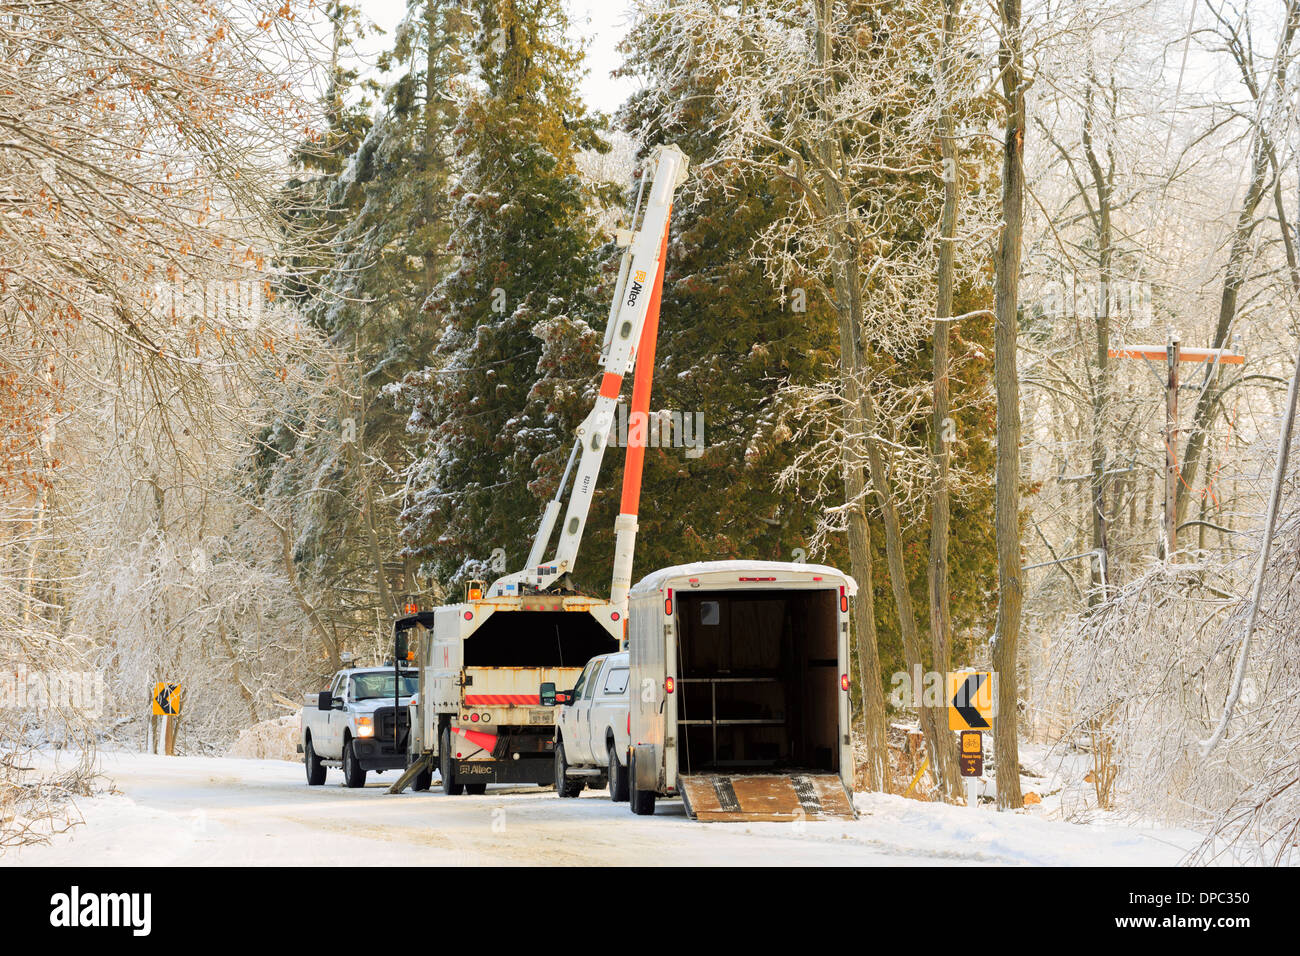 Restoring power in the aftermath of a winter storm in Southern Ontario - Stock Image